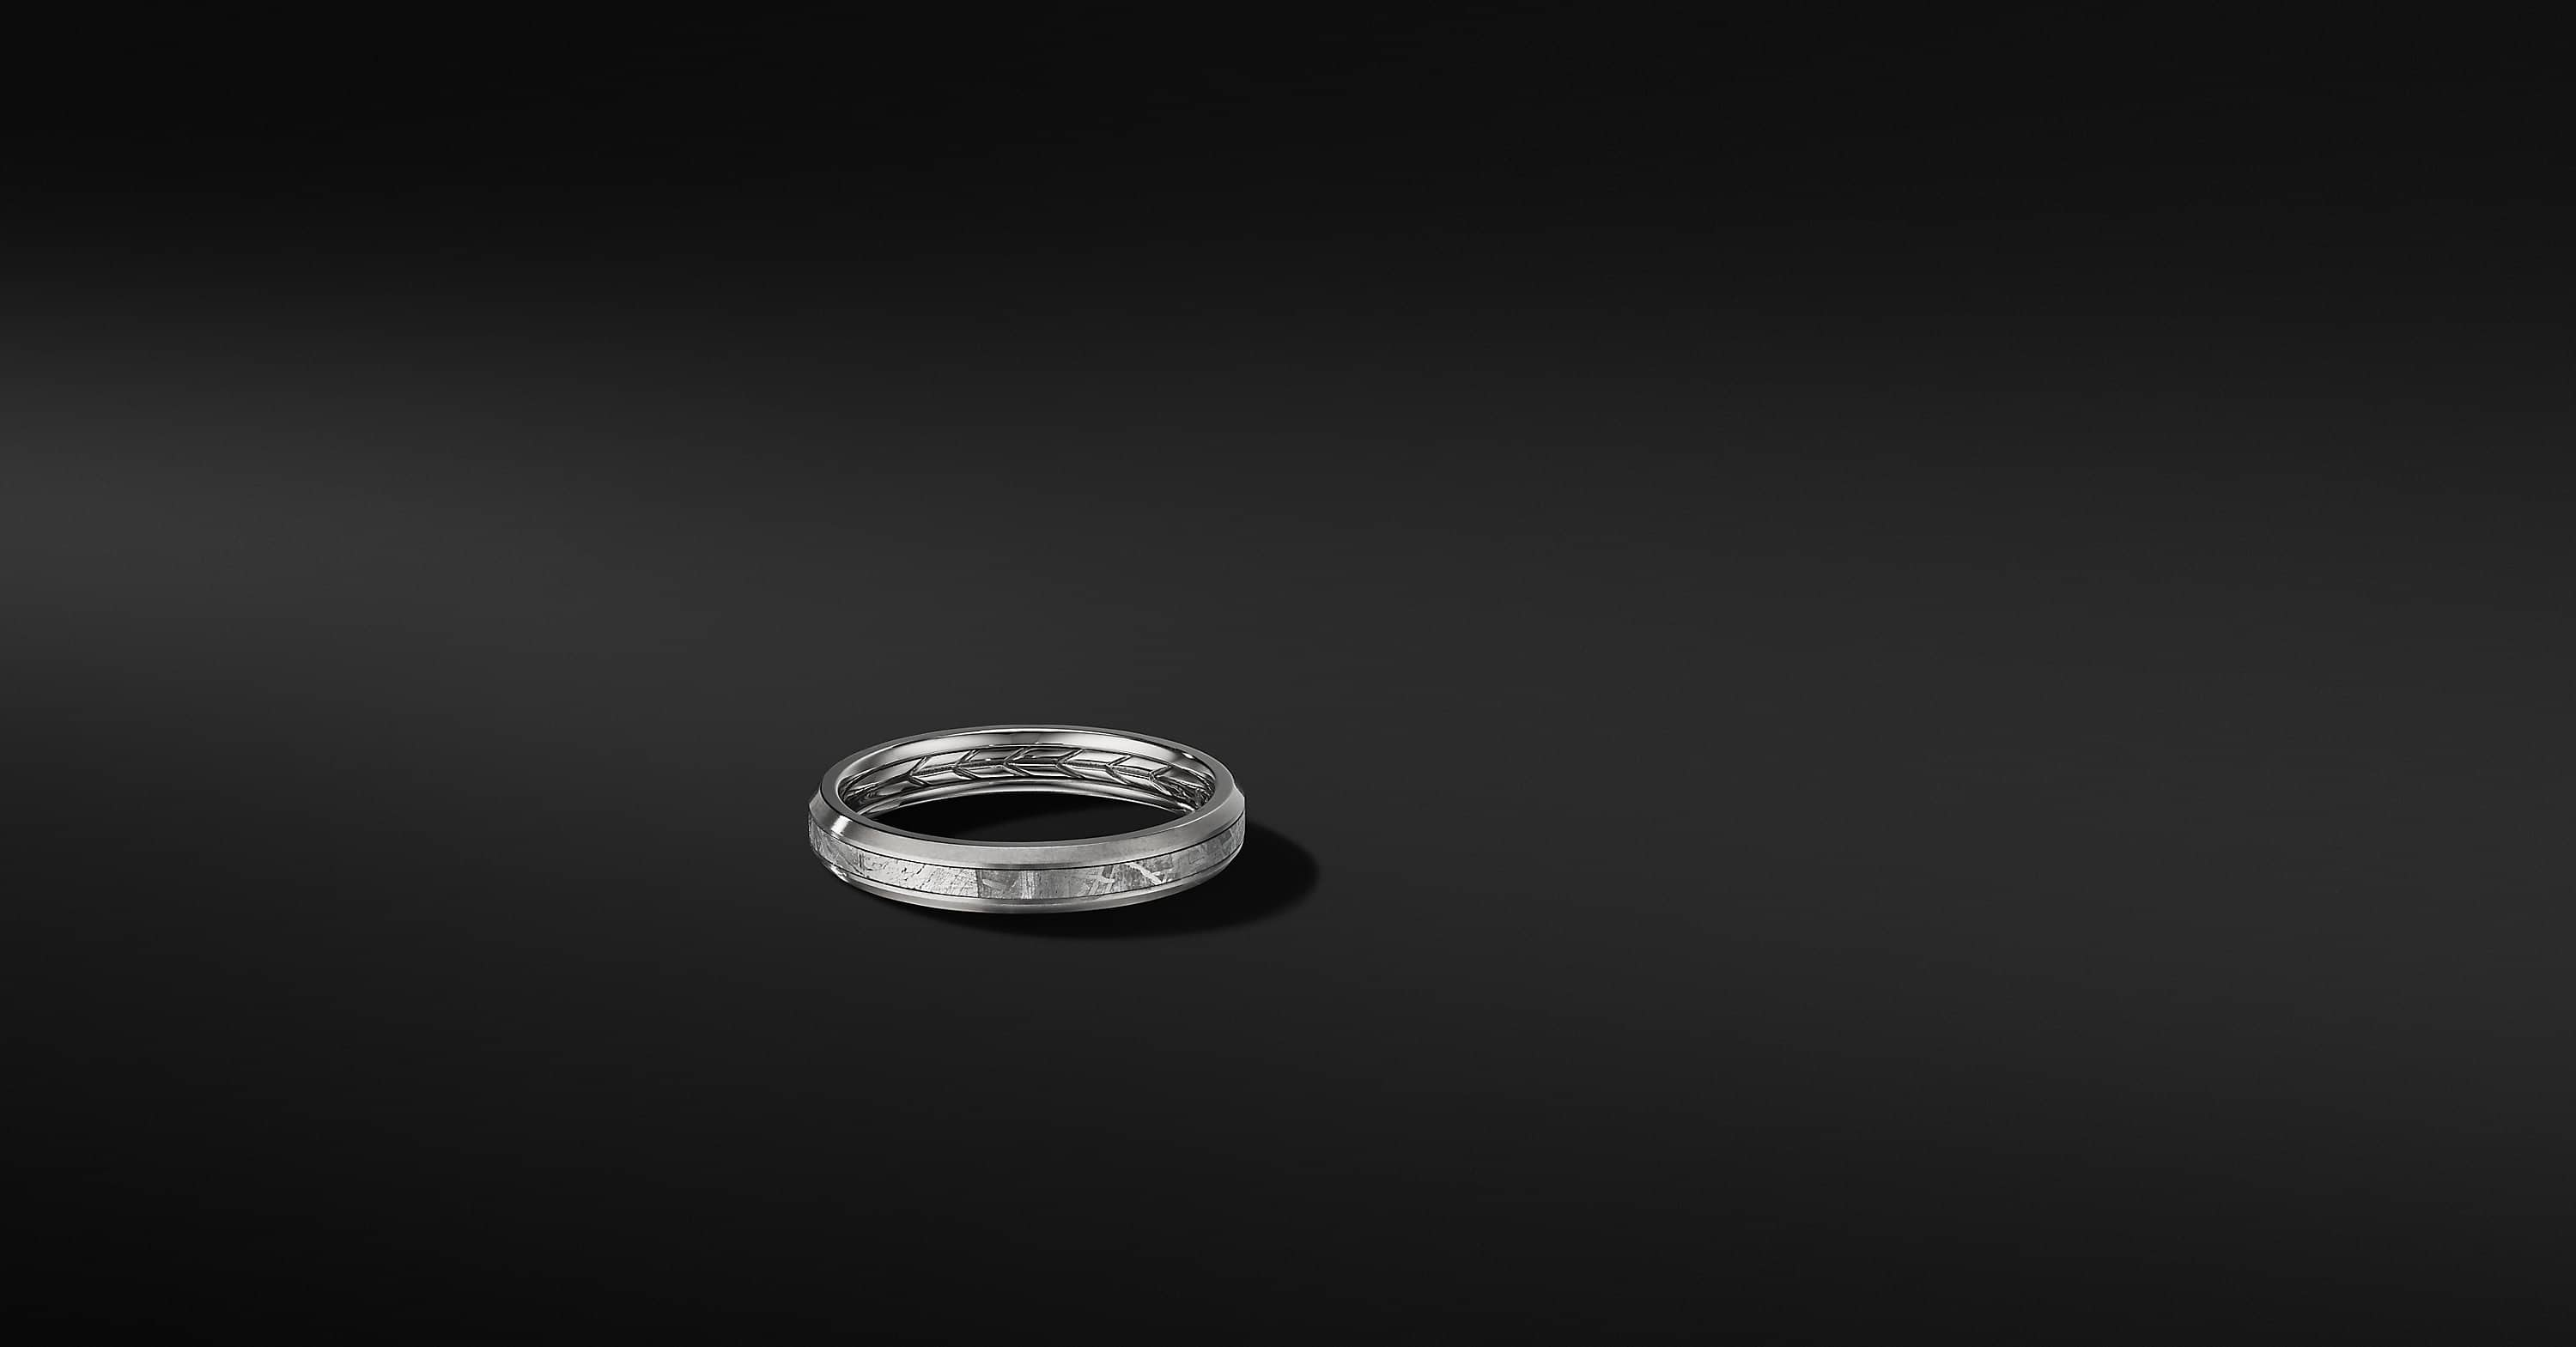 Beveled Band Ring in Grey Titanium, 4mm